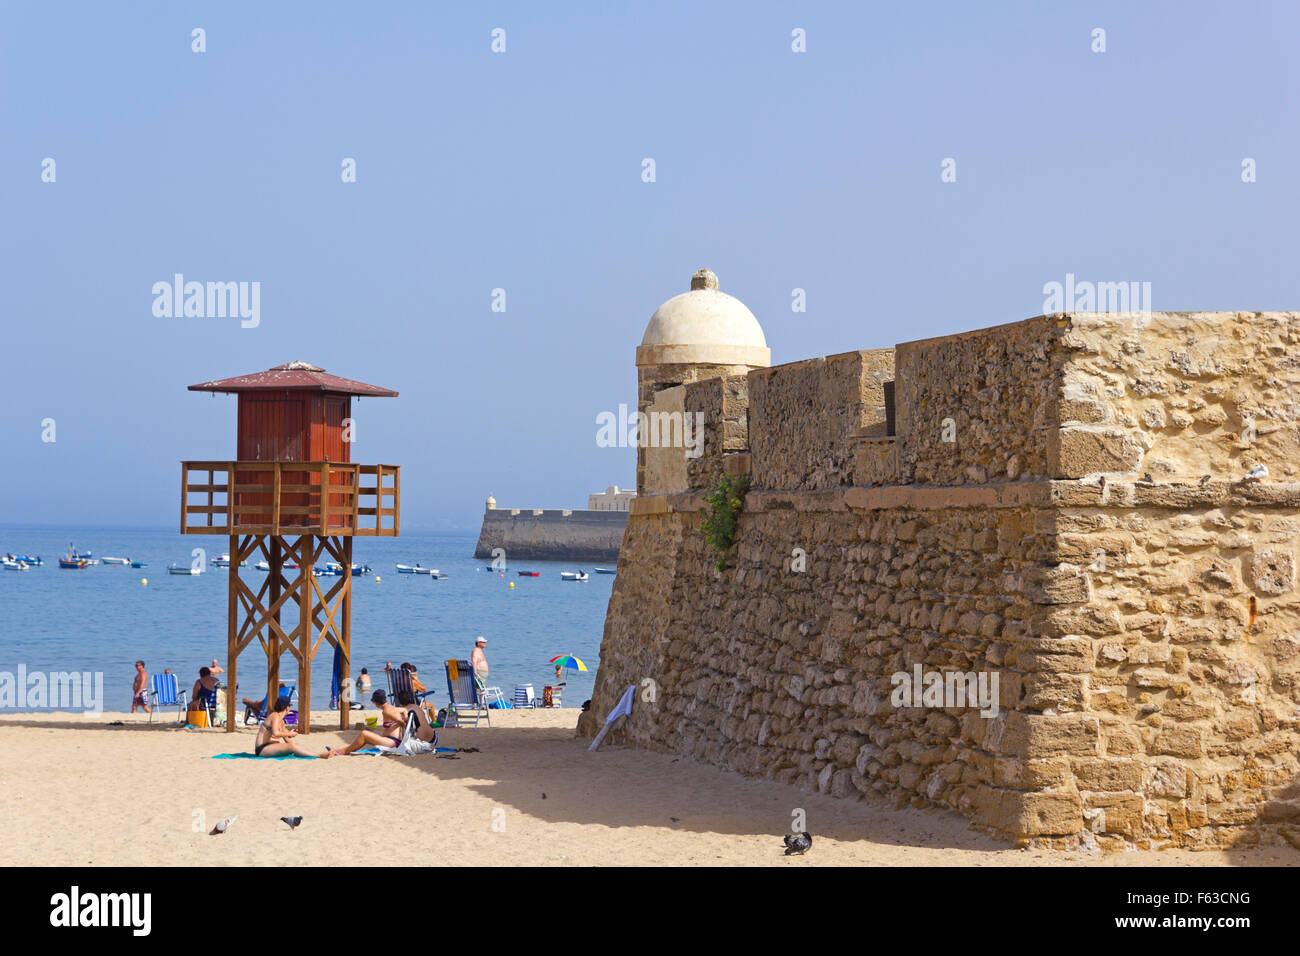 Caleta beach, in the middle of the old city, in Cadiz, Spain. - Stock Image